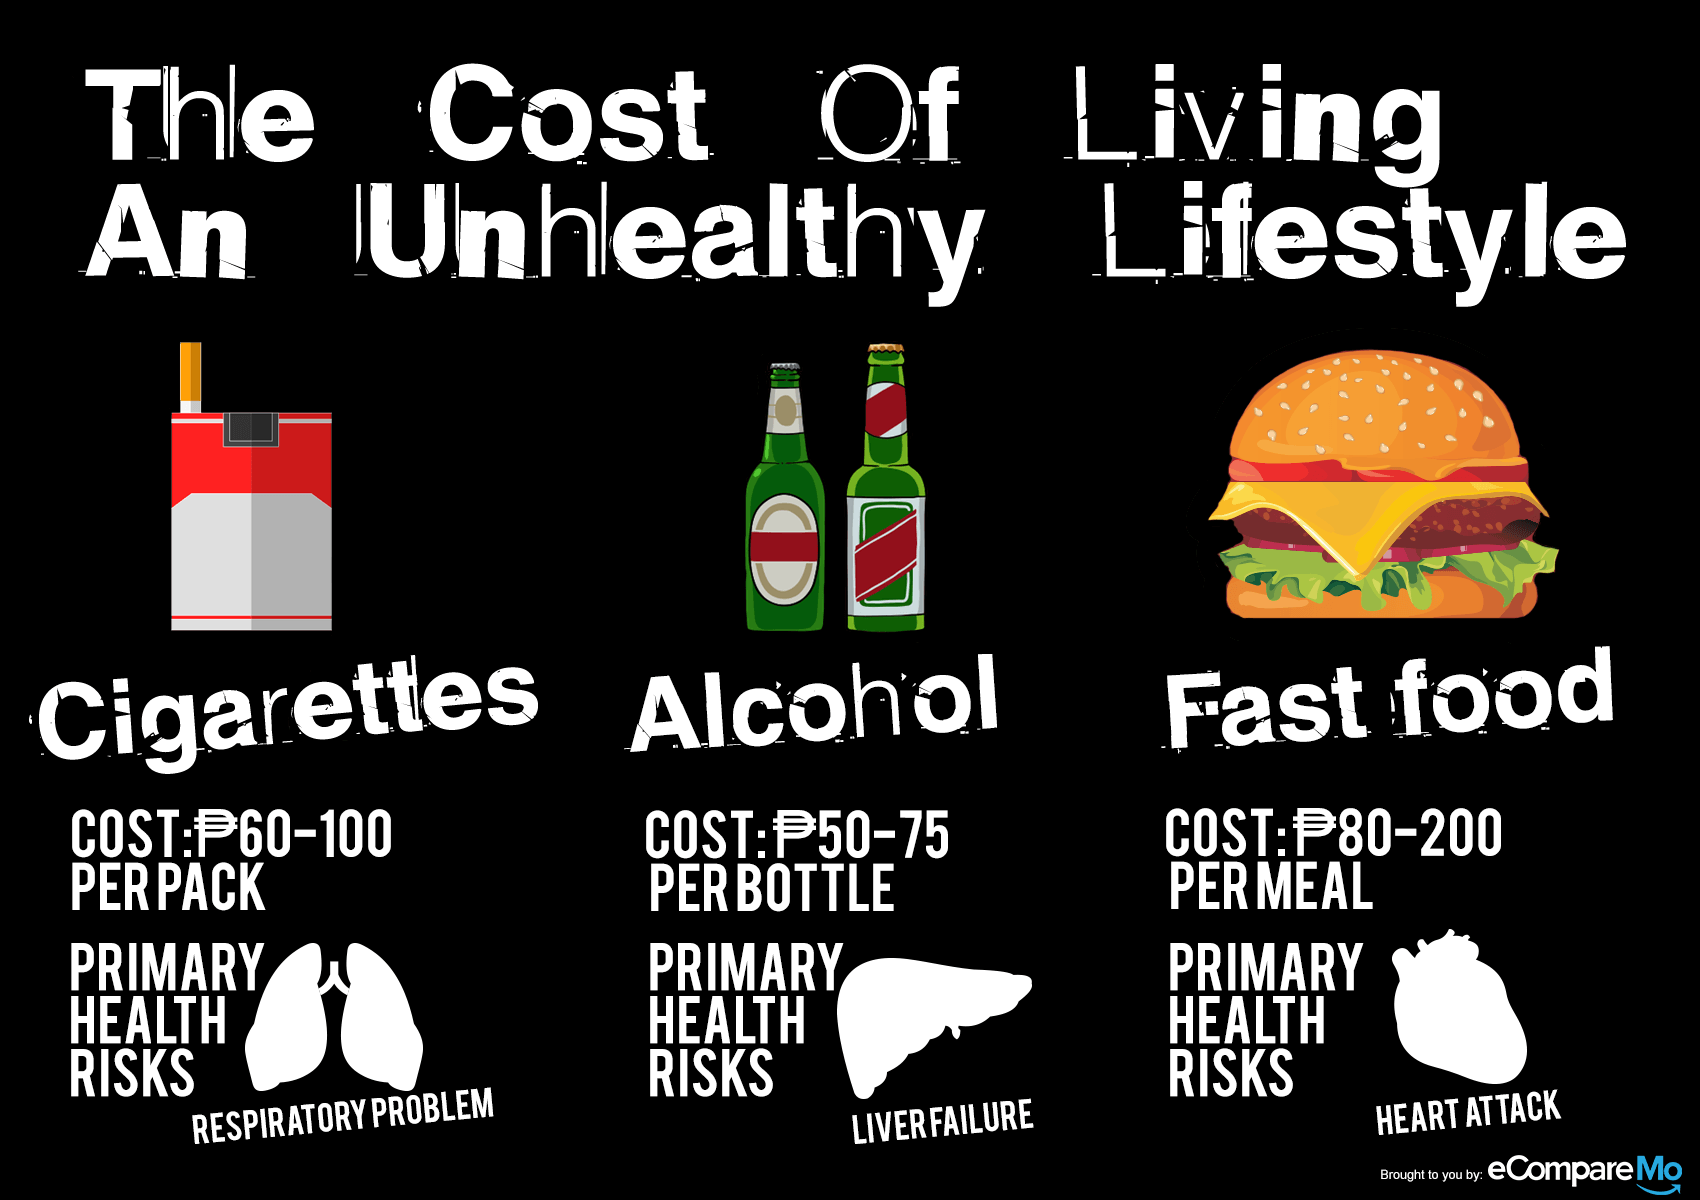 The Cost Of Living An Unhealthy Lifestyle In The Philippines